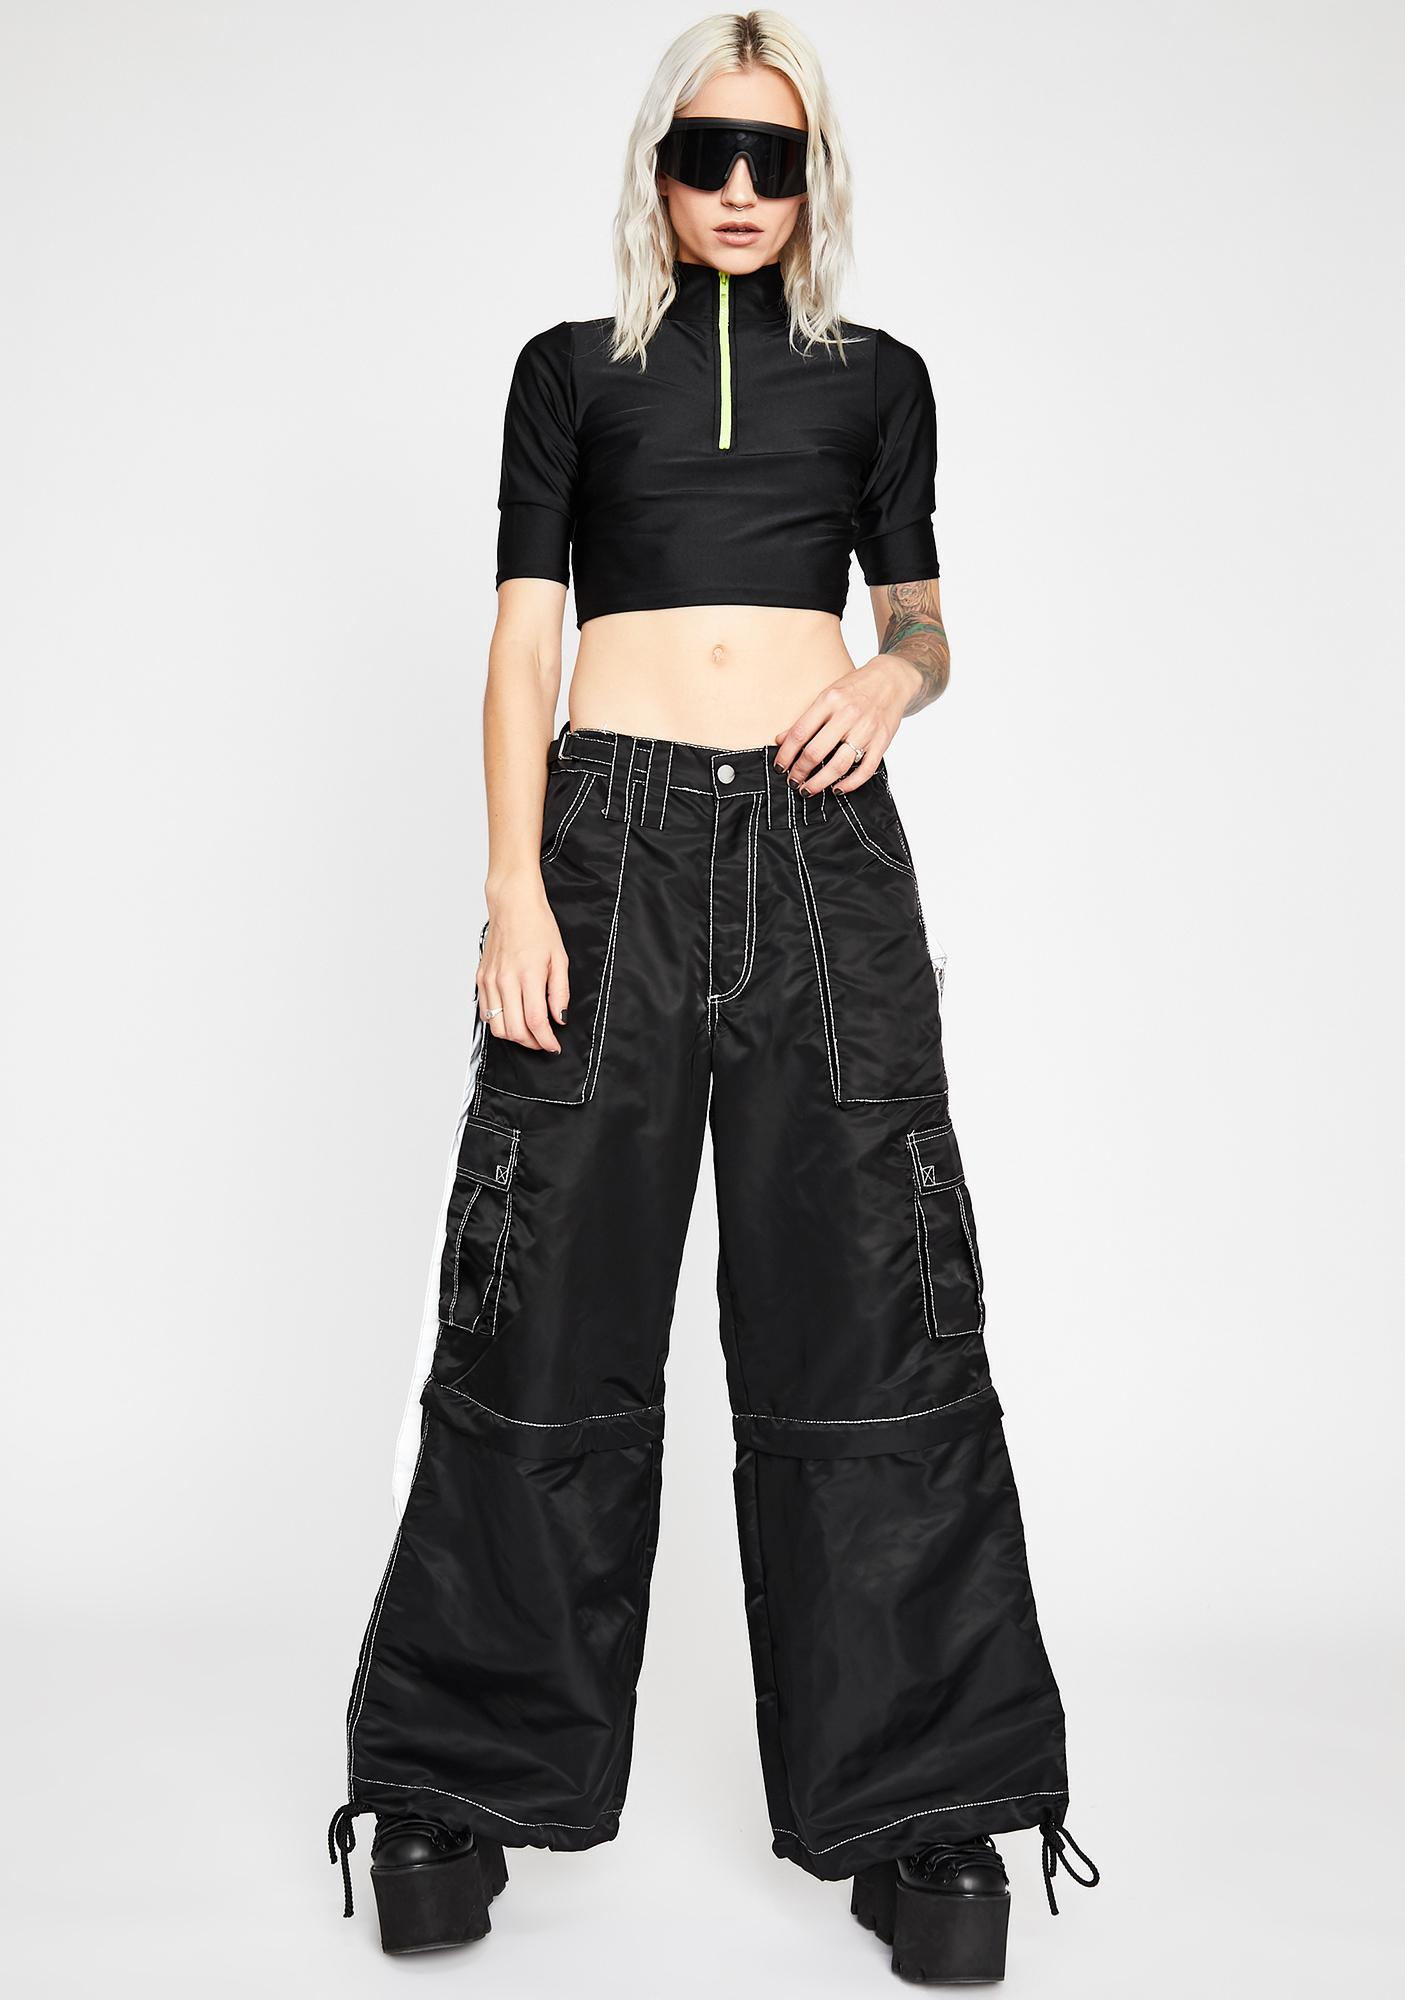 Down To Ride Crop Top